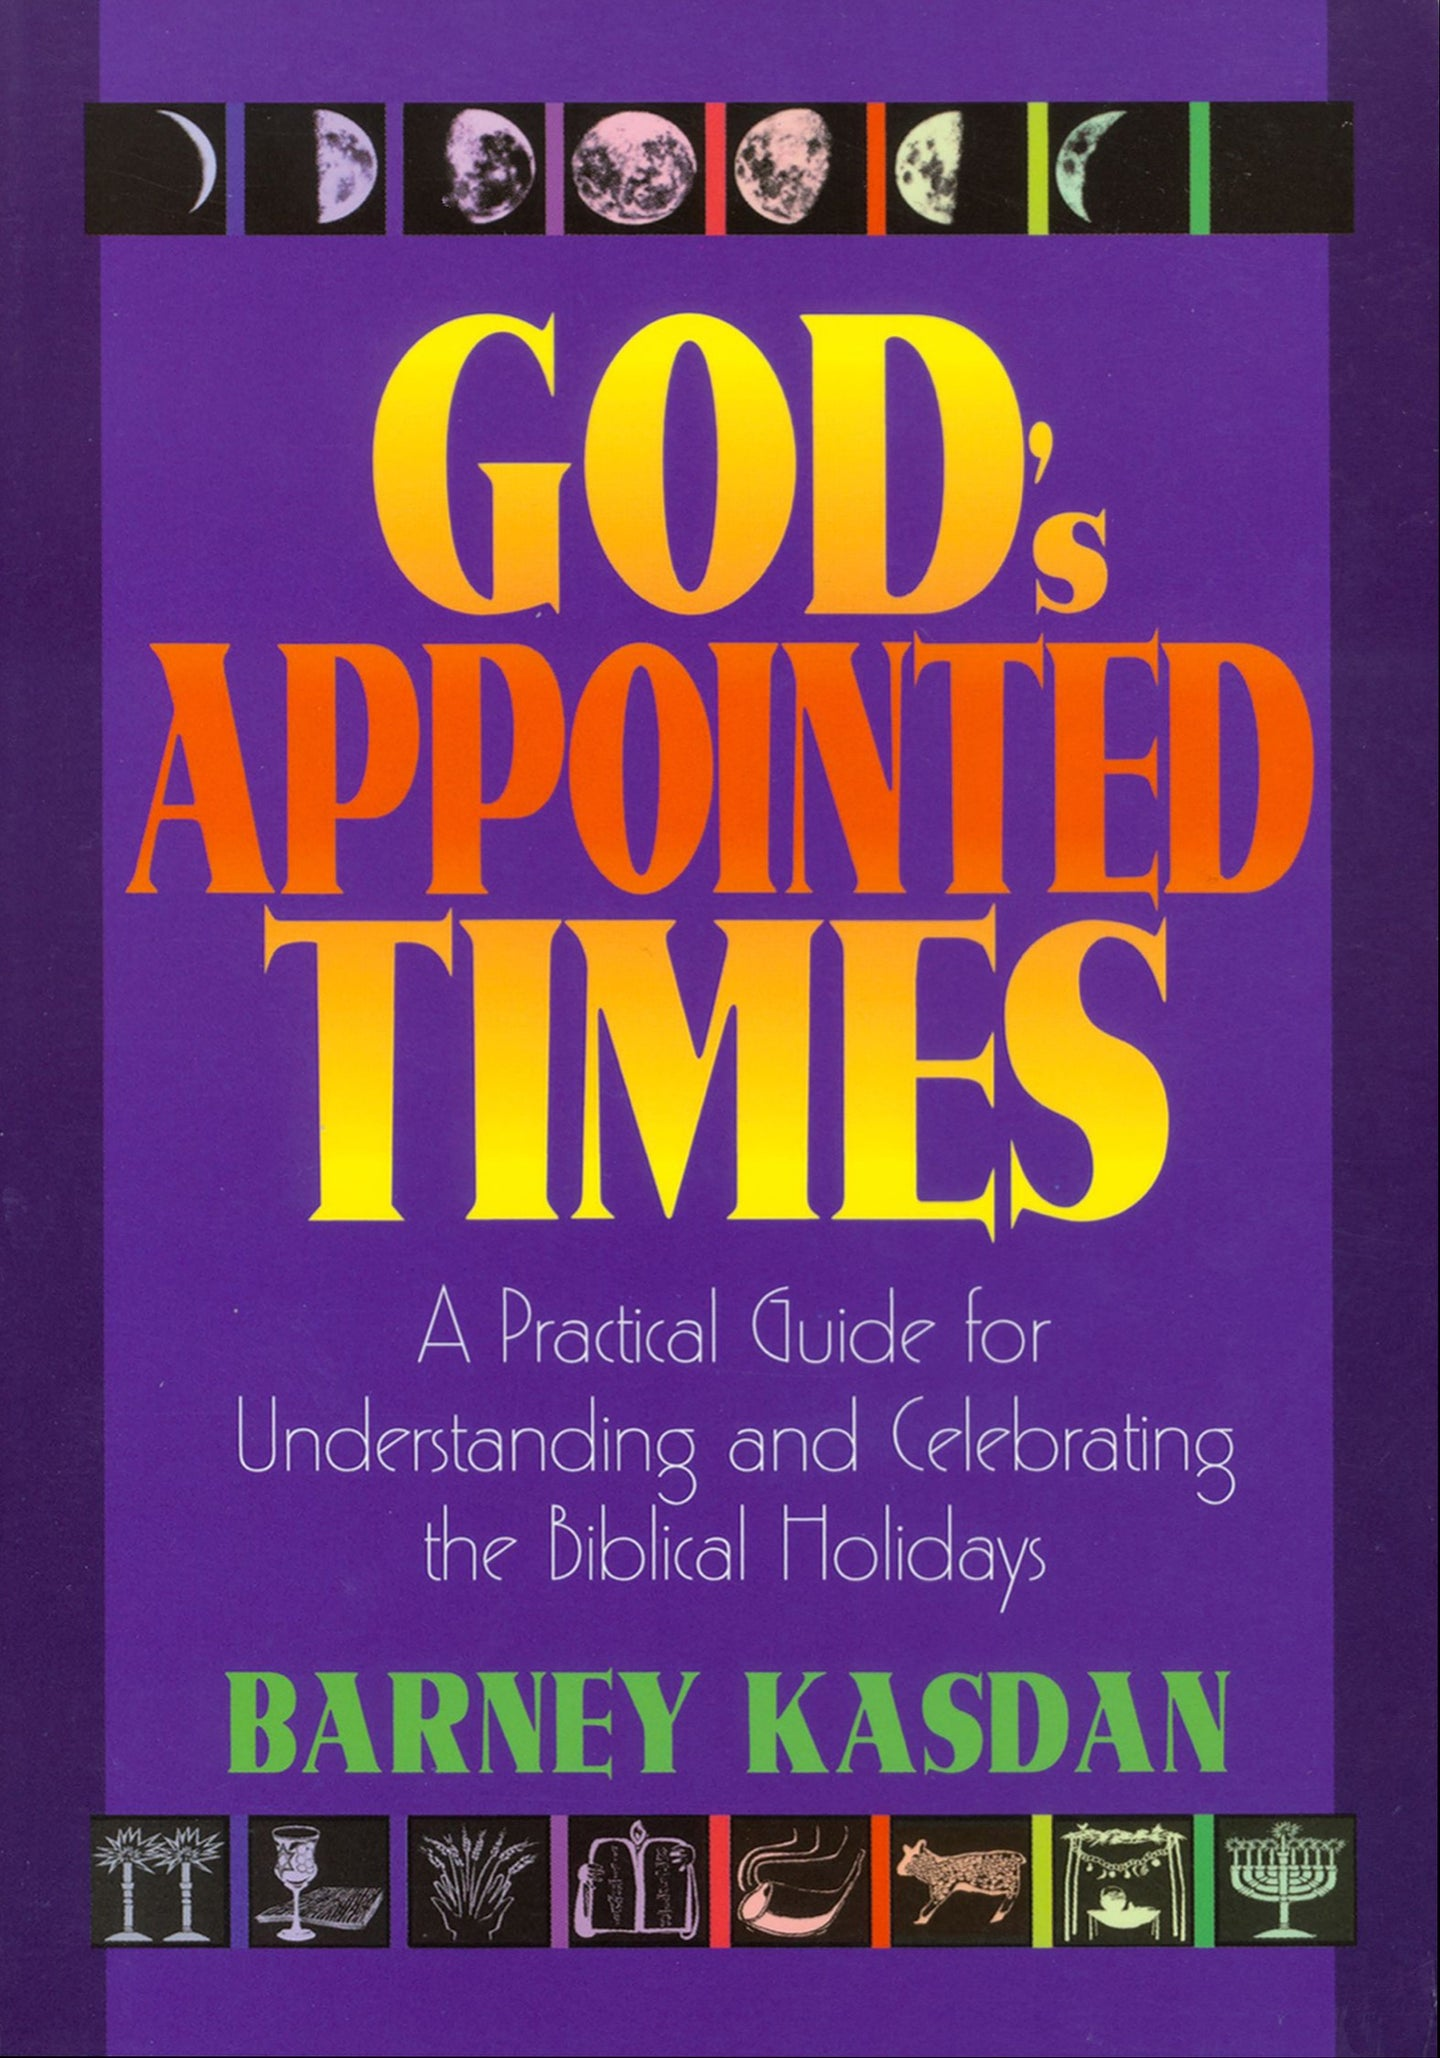 God's Appointed Times: A Practical Guide for Understanding and Celebrating the Biblical Holidays by Barney Kasdan